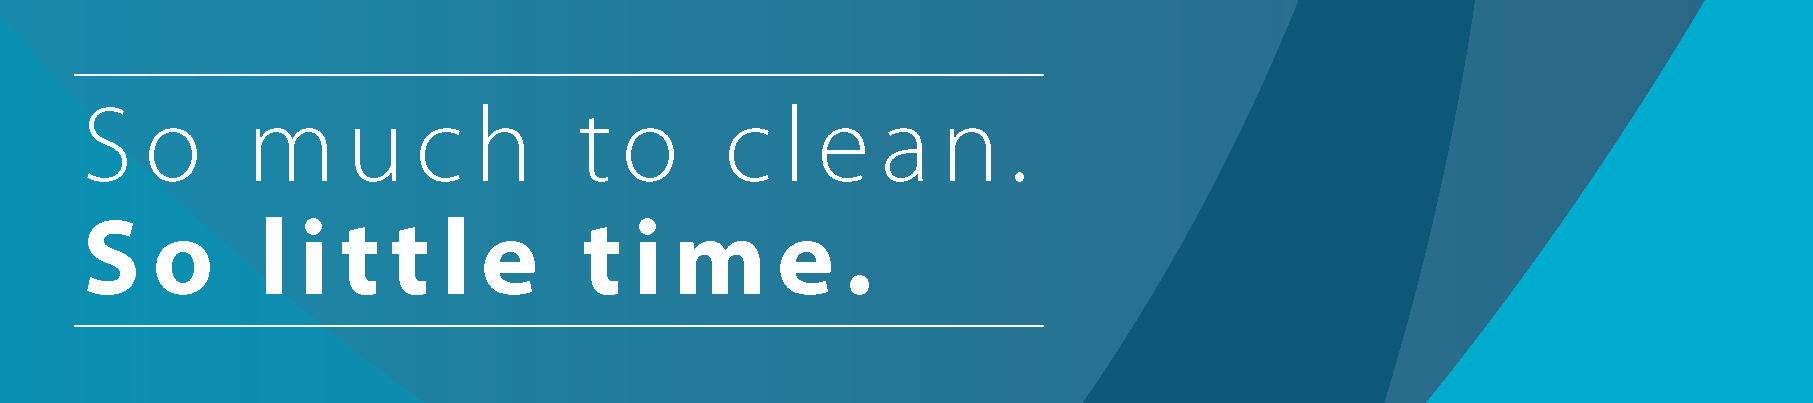 so much to clean blog banner